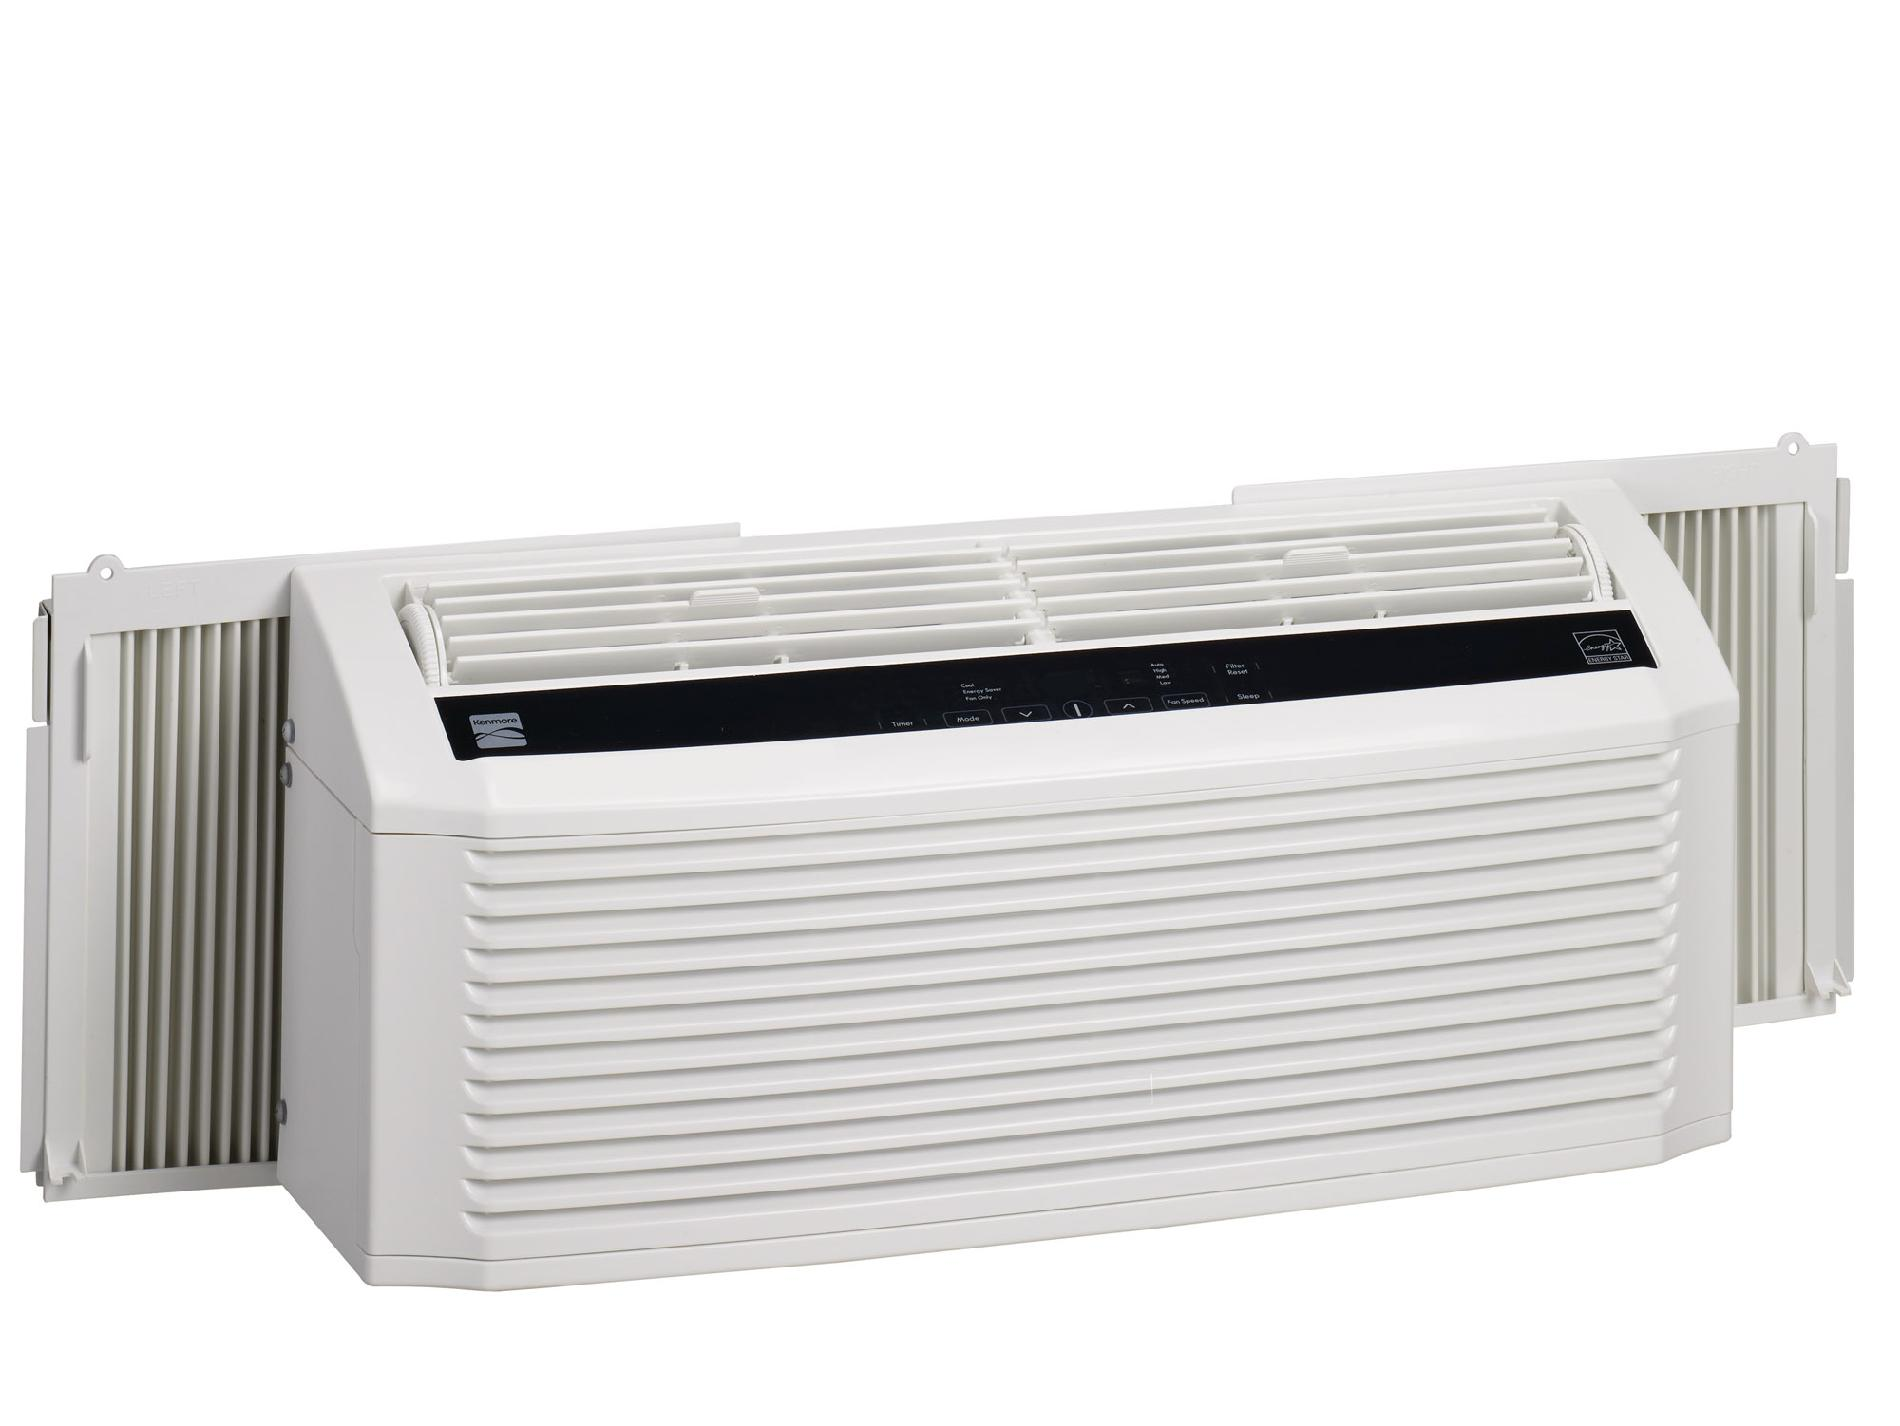 Kenmore 6,000 BTU Room Air Conditioner